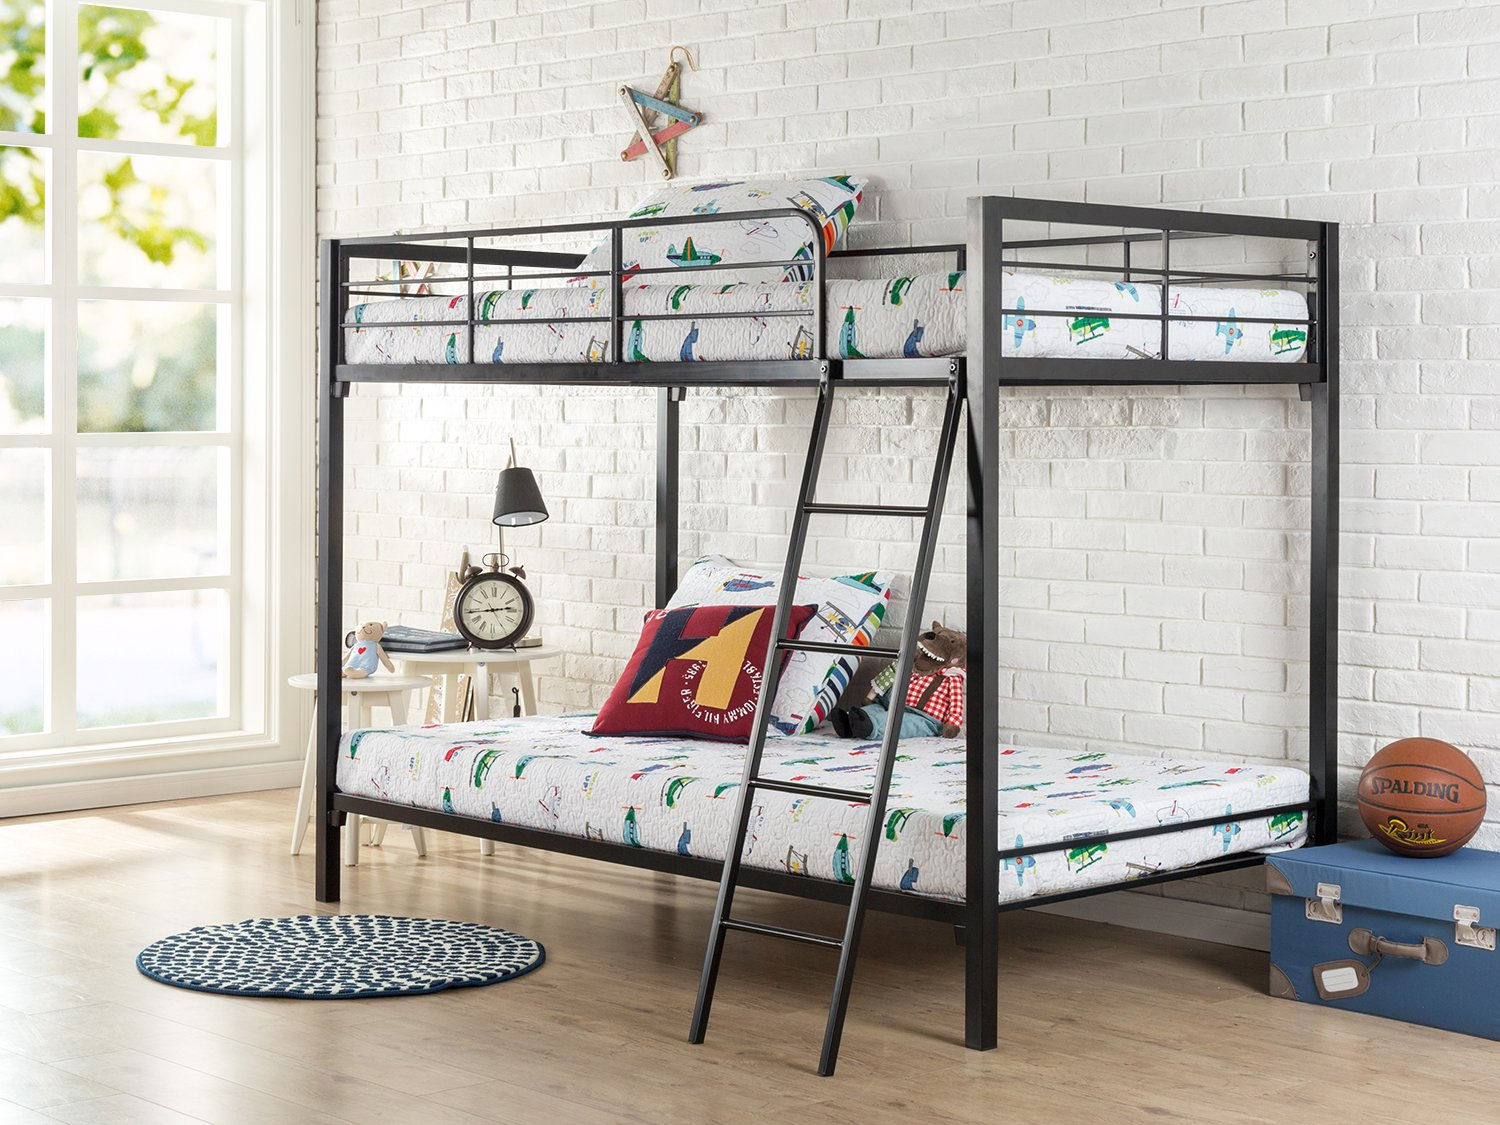 Zinus Patti Easy Assembly Quick Lock Twin over Twin Metal Bunk Bed / Quick to Assemble in Under an Hour by Zinus